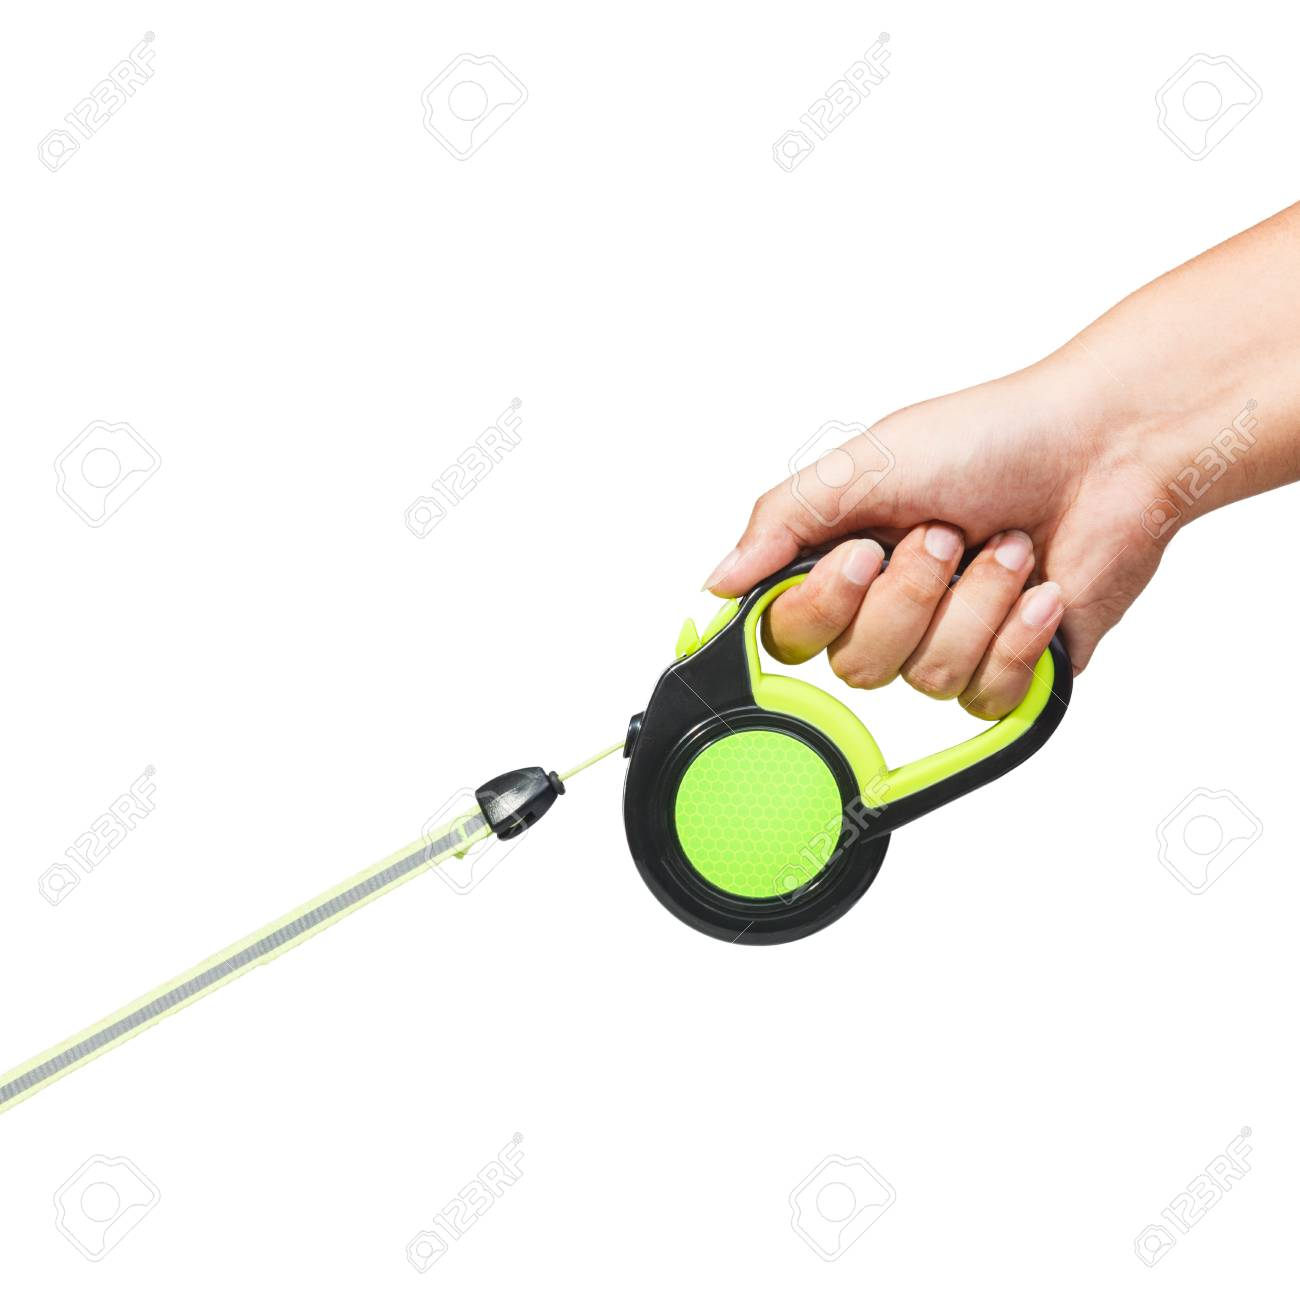 Hand holding black and green retractable dog leash on isolated white background - 104939774